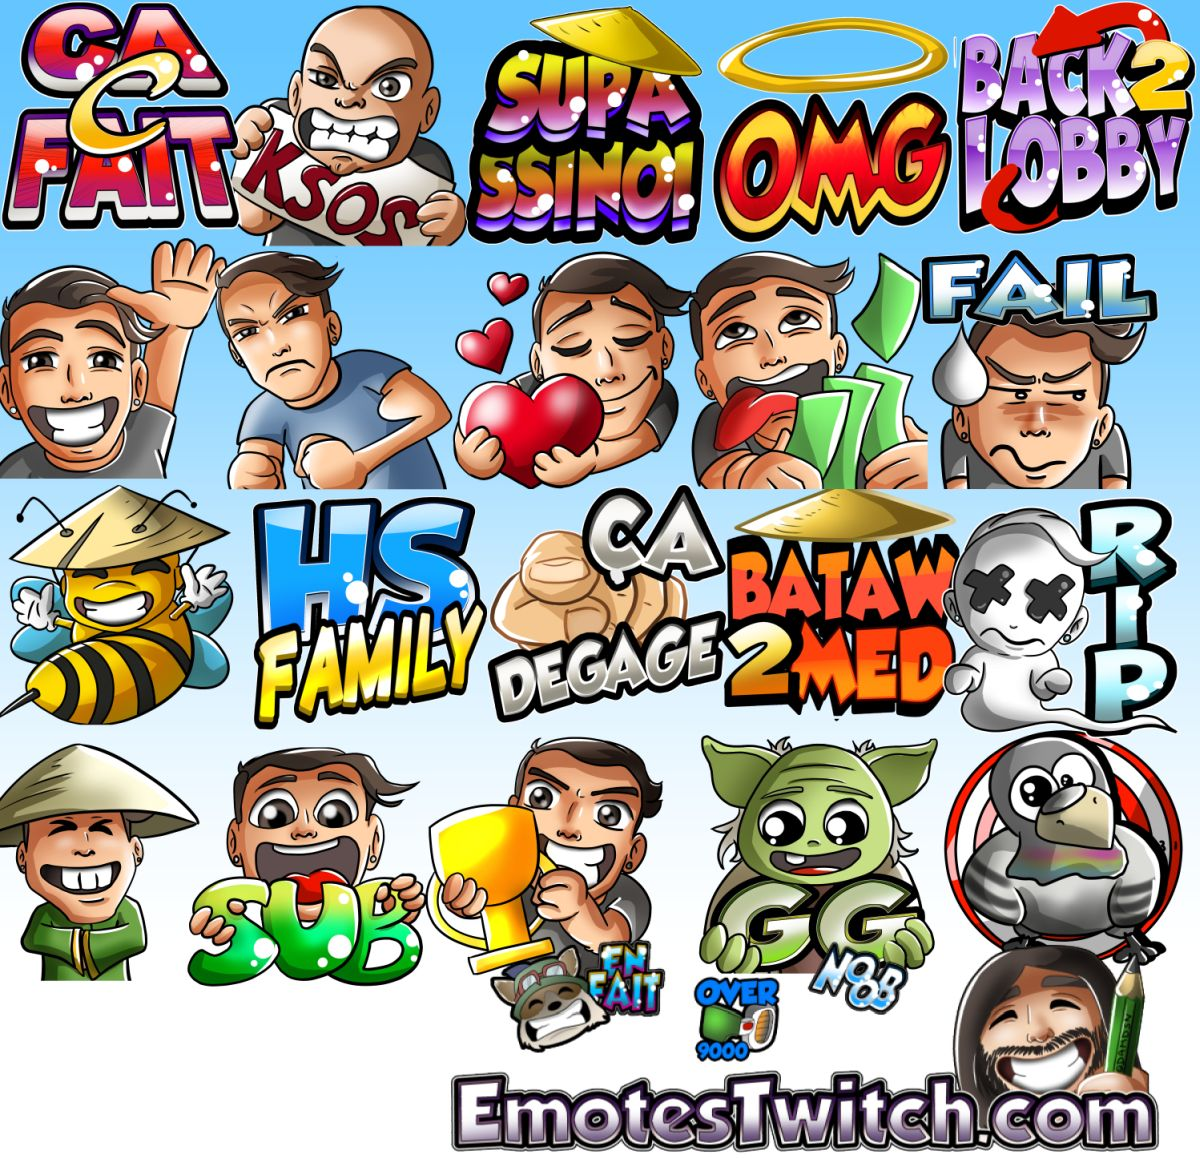 Twitch emotes for @Hackstyl - Custom emotes and badges for Streamers